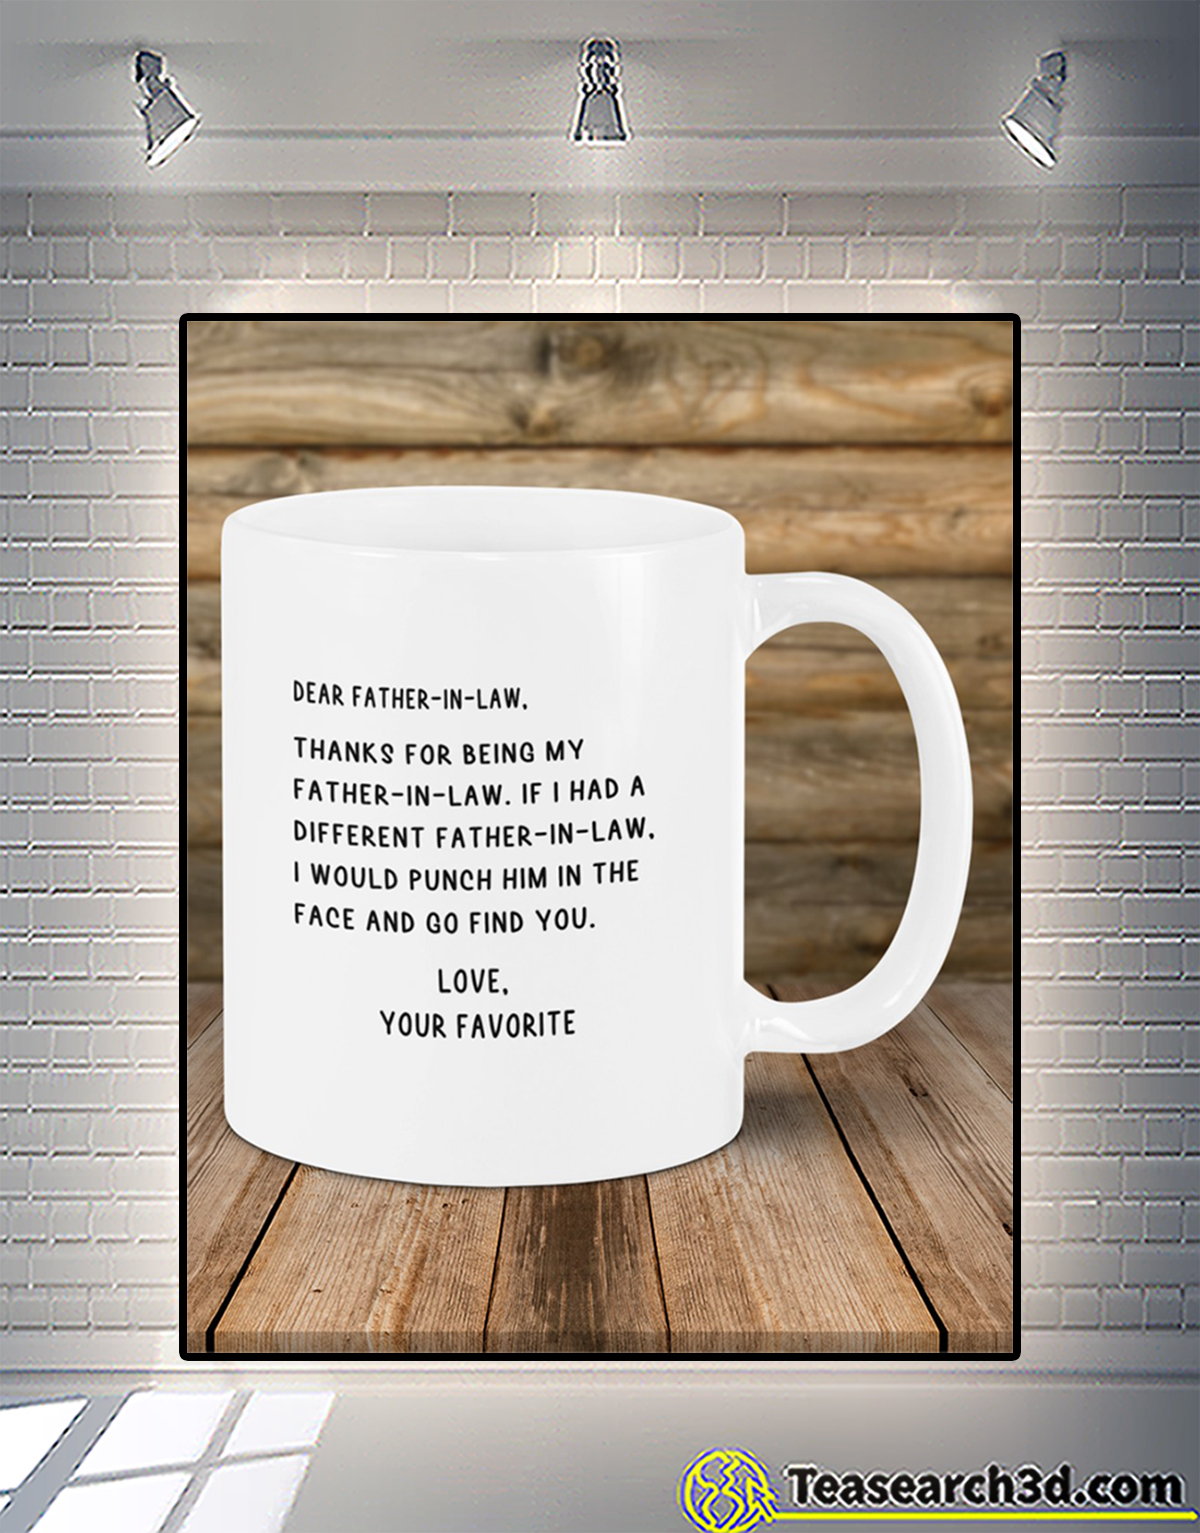 Dear father-in-law love your favorite mug